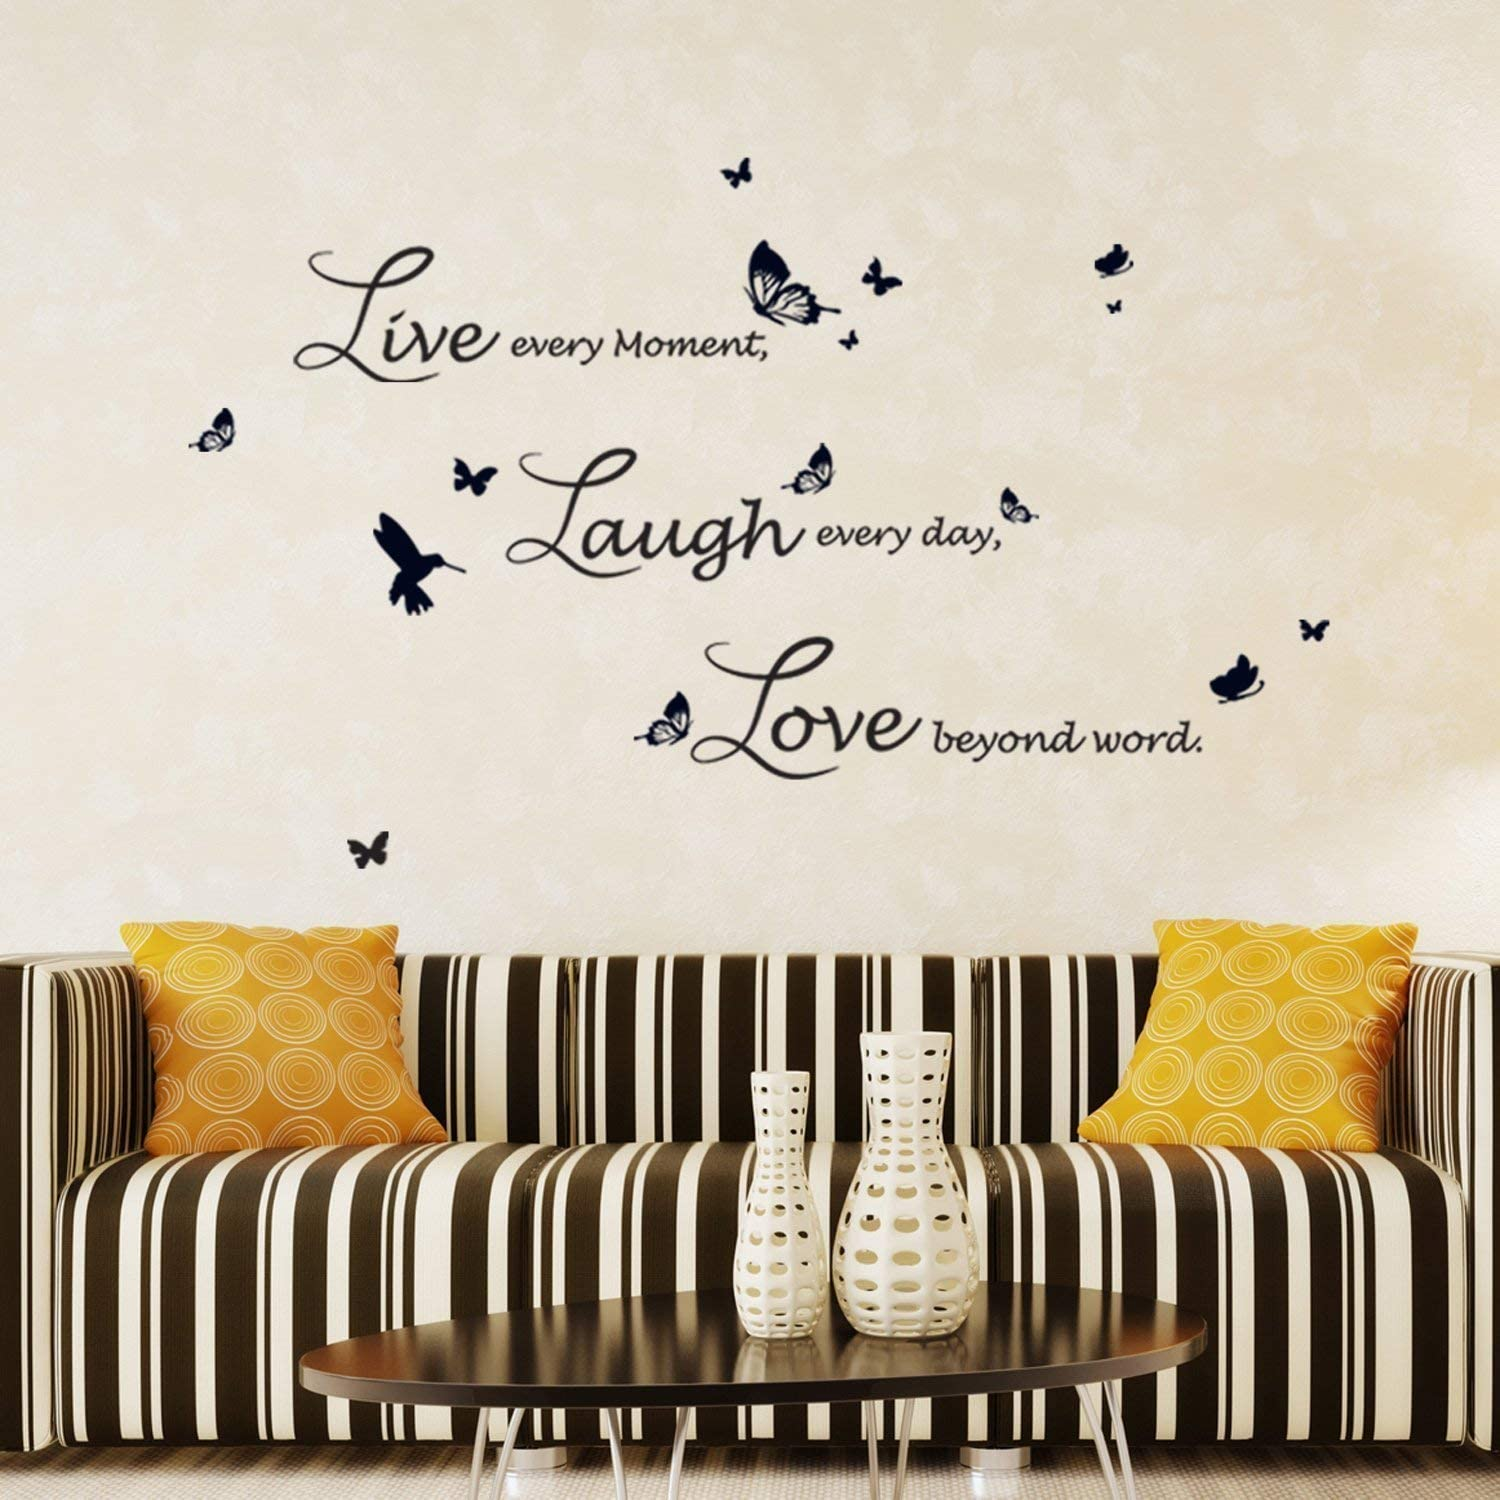 Walplus Wall Stickers Dream Quote Removable Self-Adhesive Mural Art Decals Vinyl Home Decoration DIY Living Bedroom Office D/écor Wallpaper Kids Room Gift Black